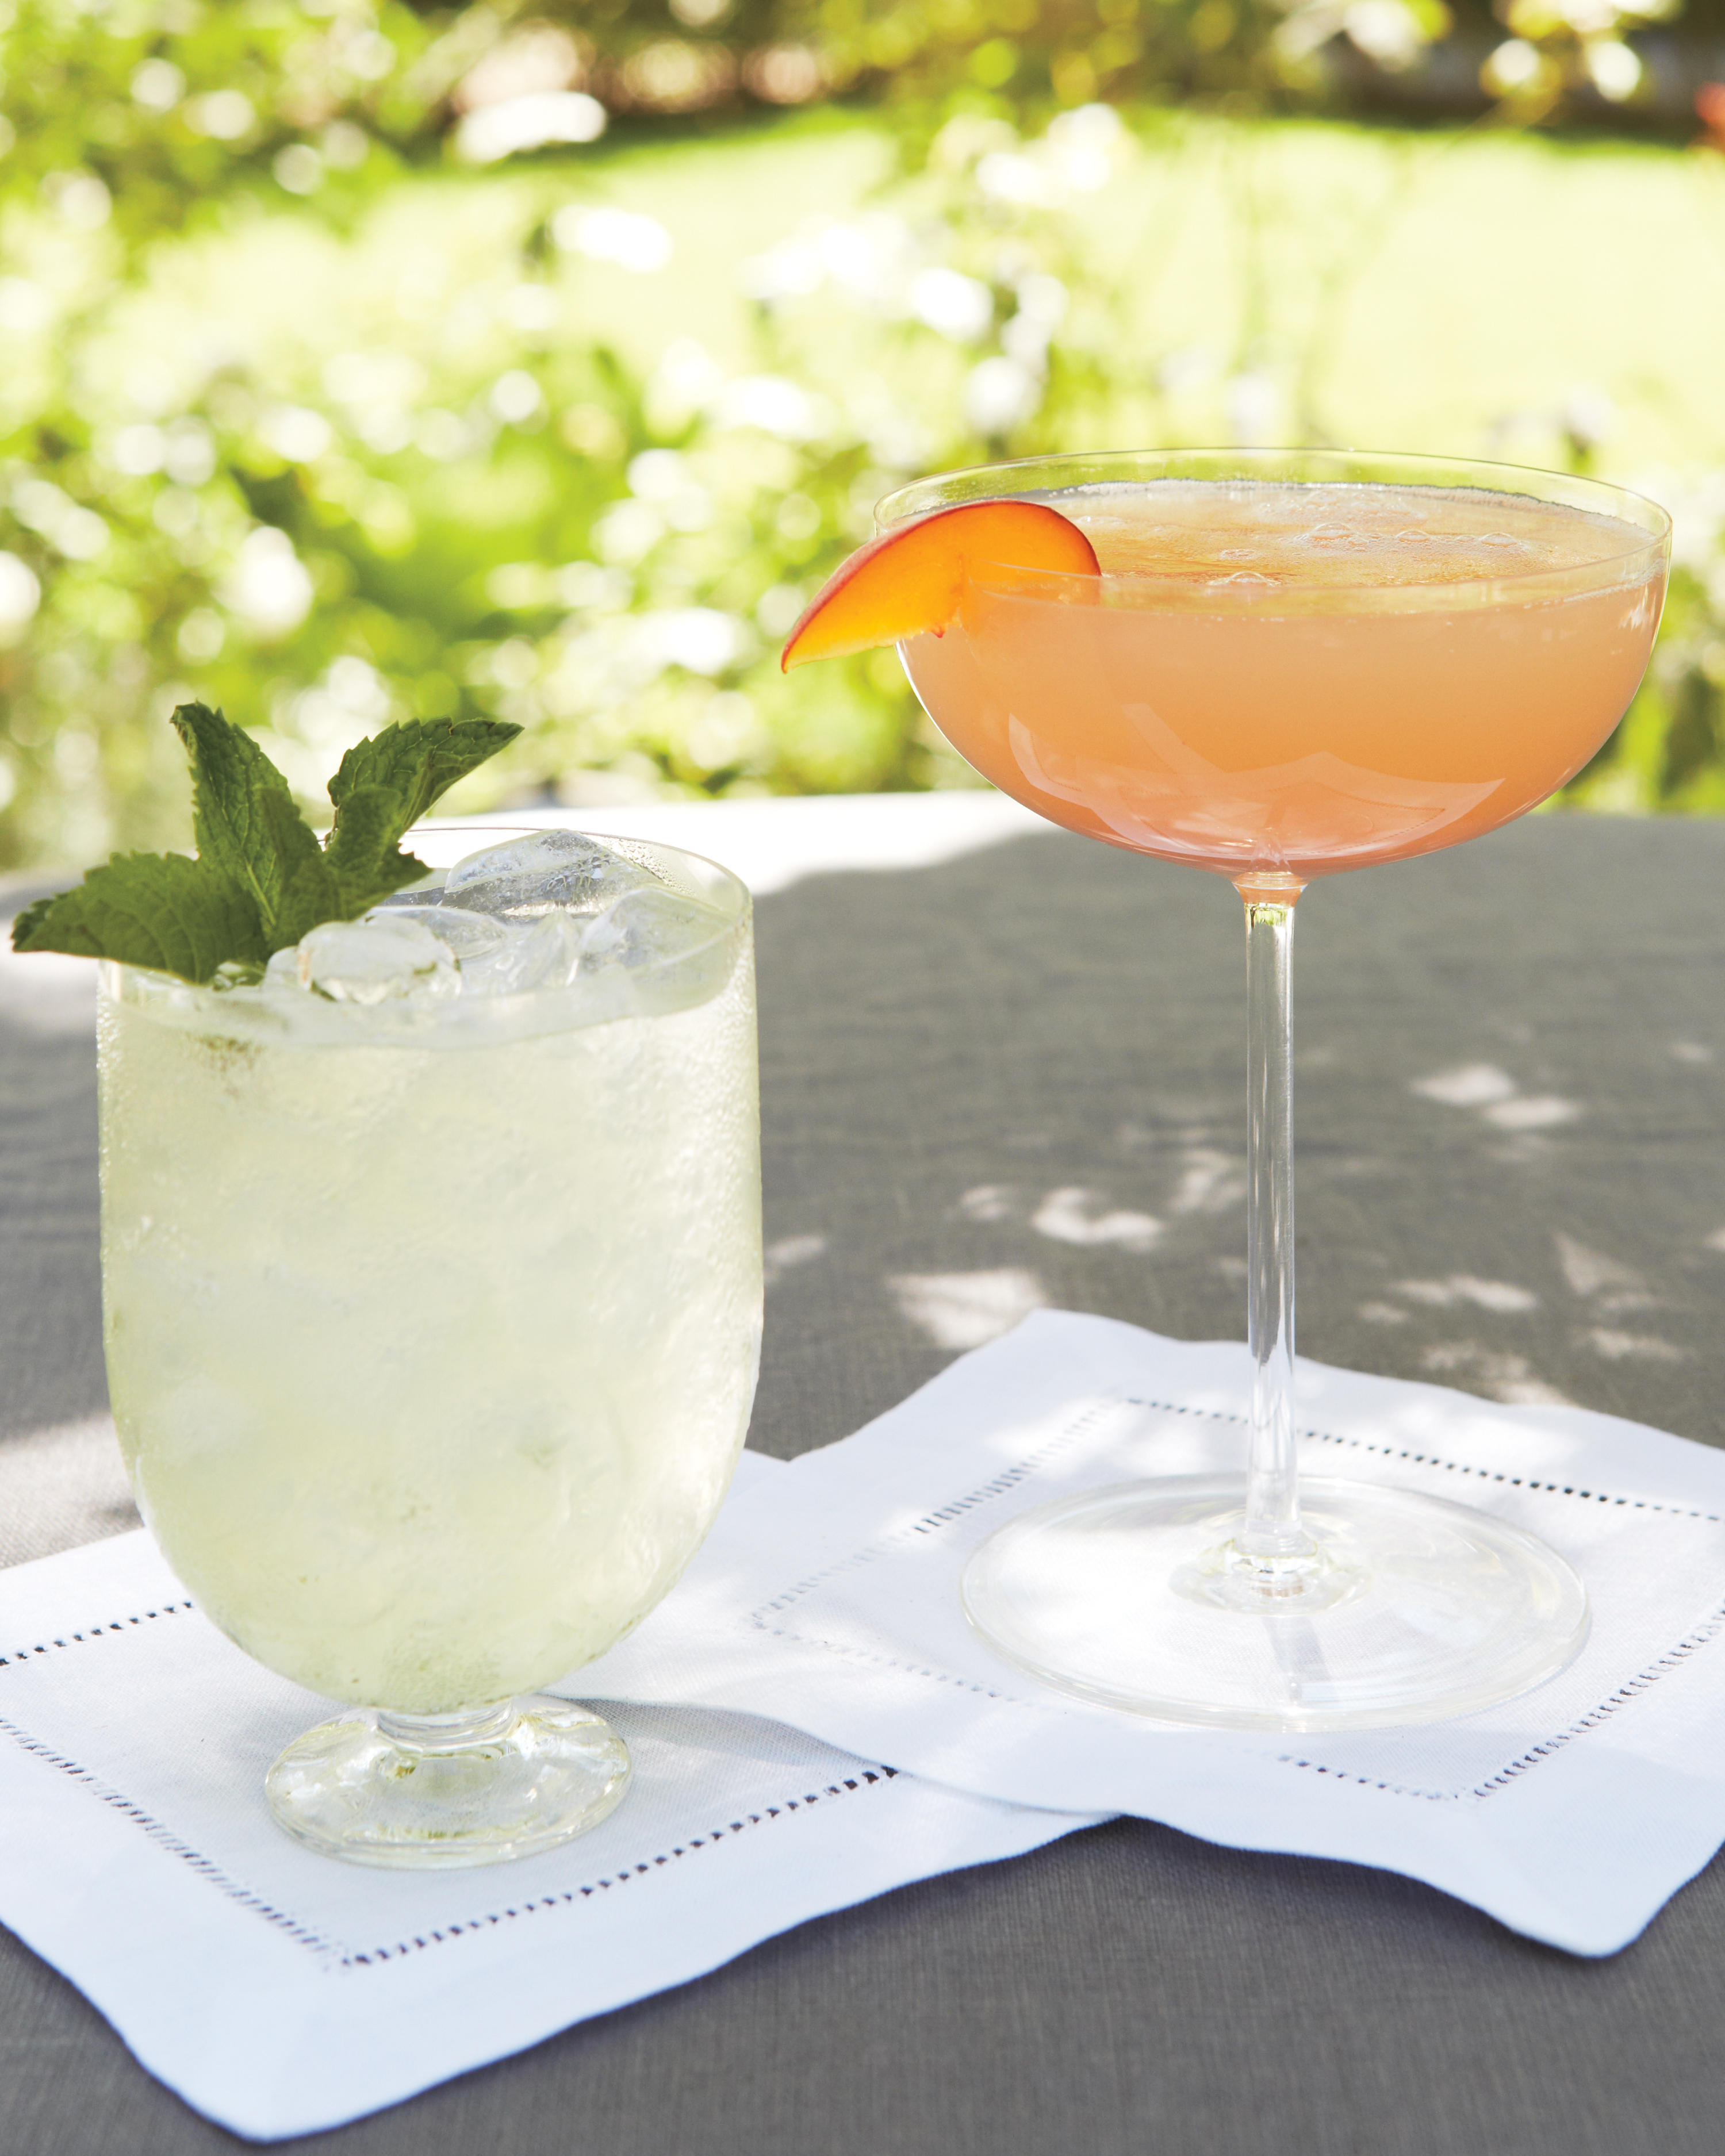 cocktails-mwd109296.jpg